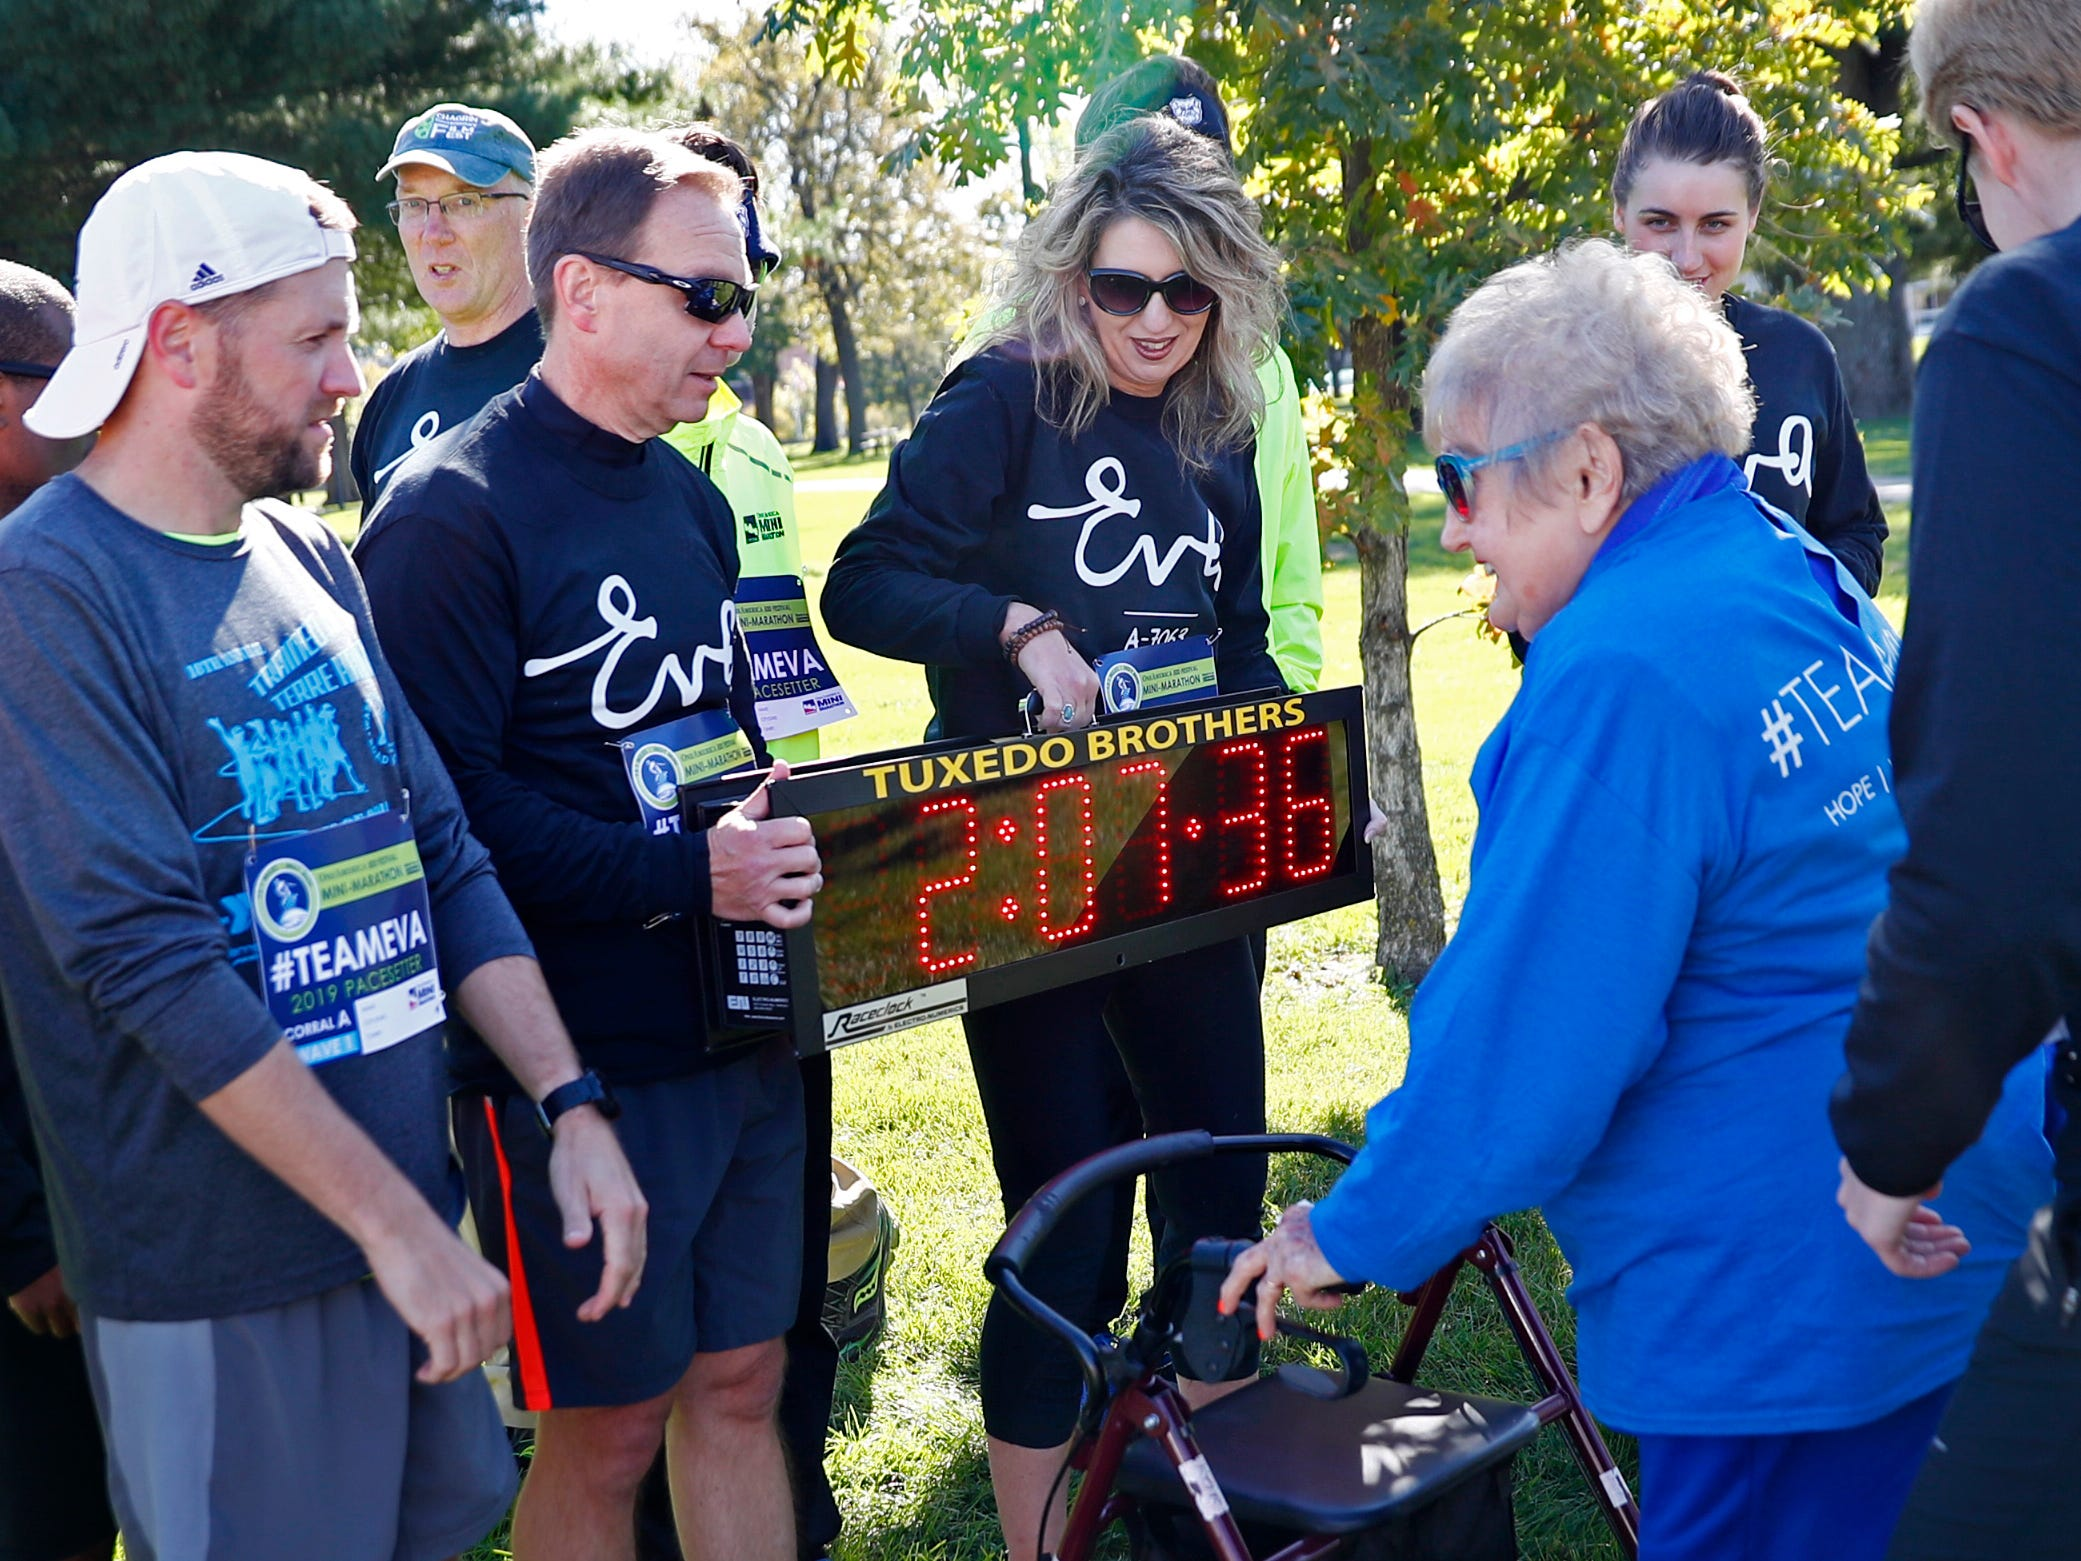 Holocaust survivor Eva Kor joins others after the relay running of the pace-setting run for the 2019 OneAmerica 500 Festival Mini-Marathon, Wednesday, Oct. 24, 2018.  The 500 Festival will donate $1 to the CANDLES Holocaust Museum in Terre Haute for every mini-marathon participant who finishes the 2019 race in a better time than Team Eva, which was 2 hours, 7 minutes, 36 seconds.  Kor ran the very last part of the relay race to add to the time.